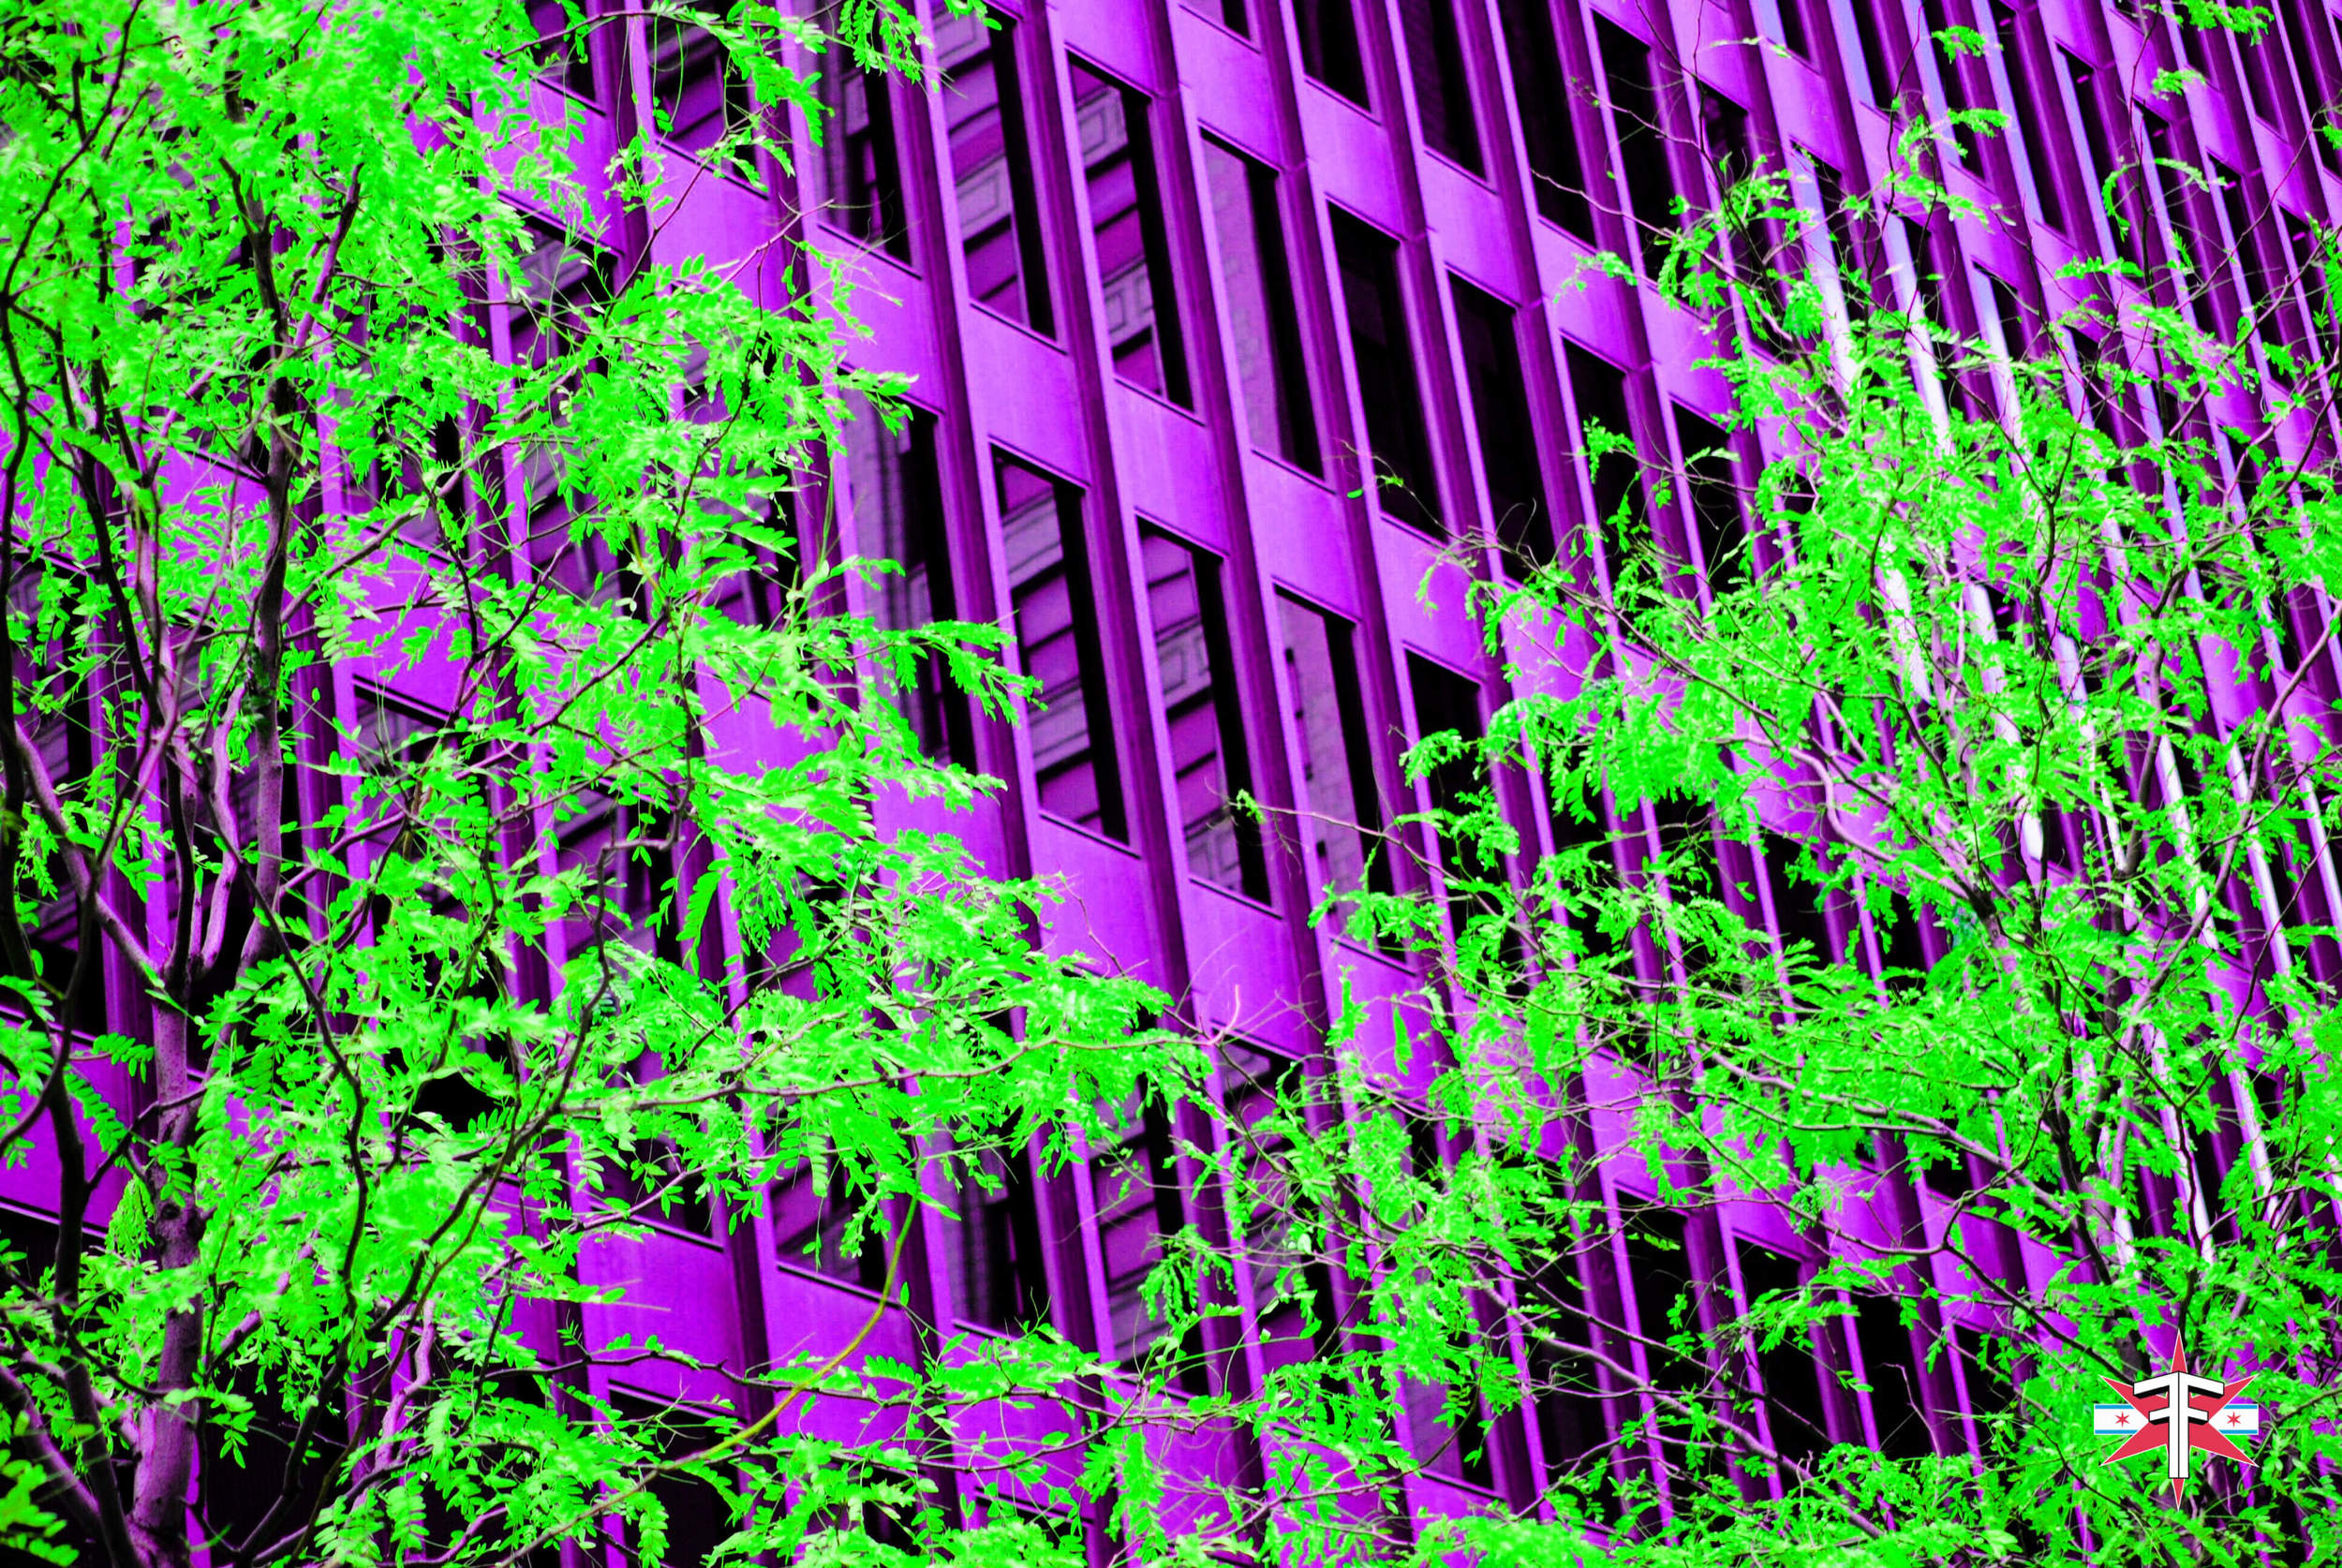 chicago art abstract eric formato photography color travel cityscape architecture saturated citycapes bright vibrant artistic-56.jpg